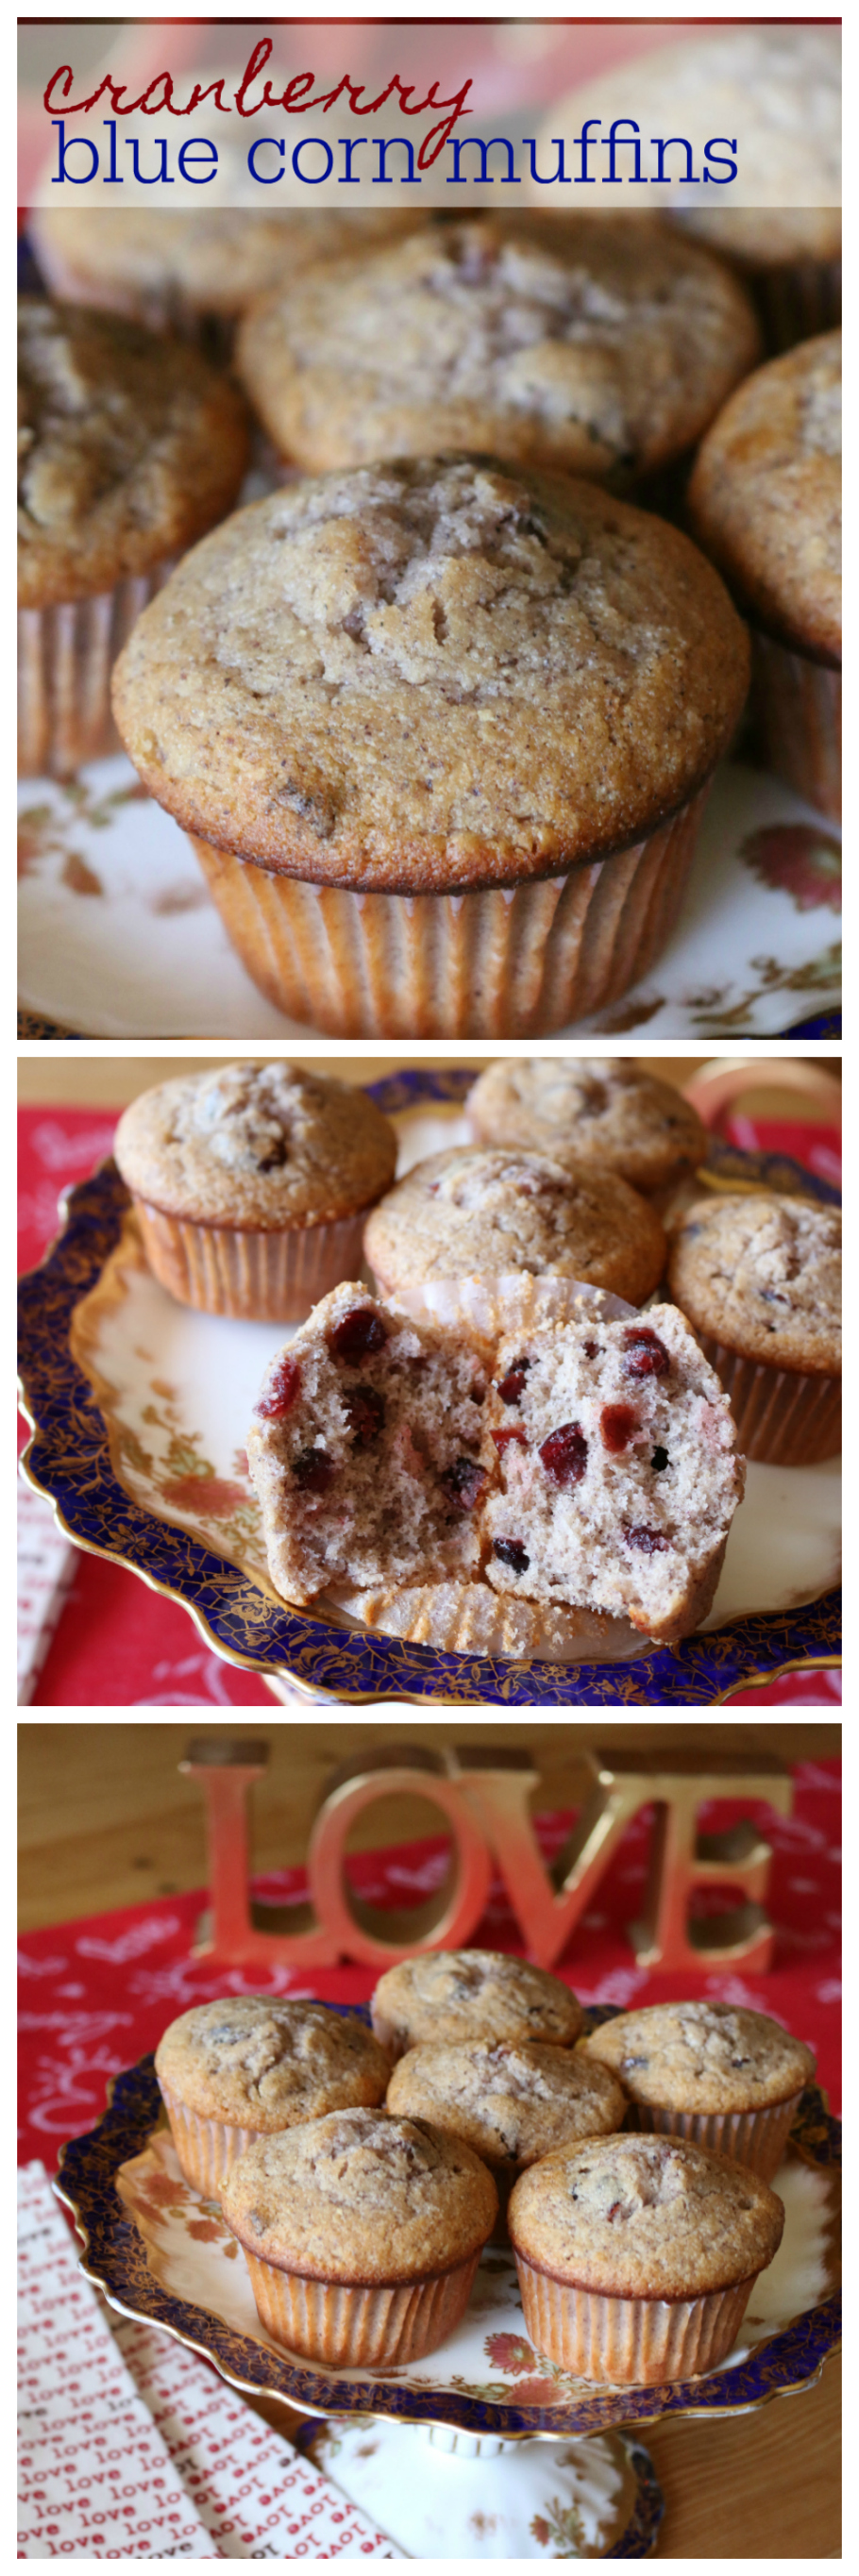 A Cranberry Blue Corn Breakfast Muffin Recipe | CeceliasGoodStuff.com | Good Food for Good People